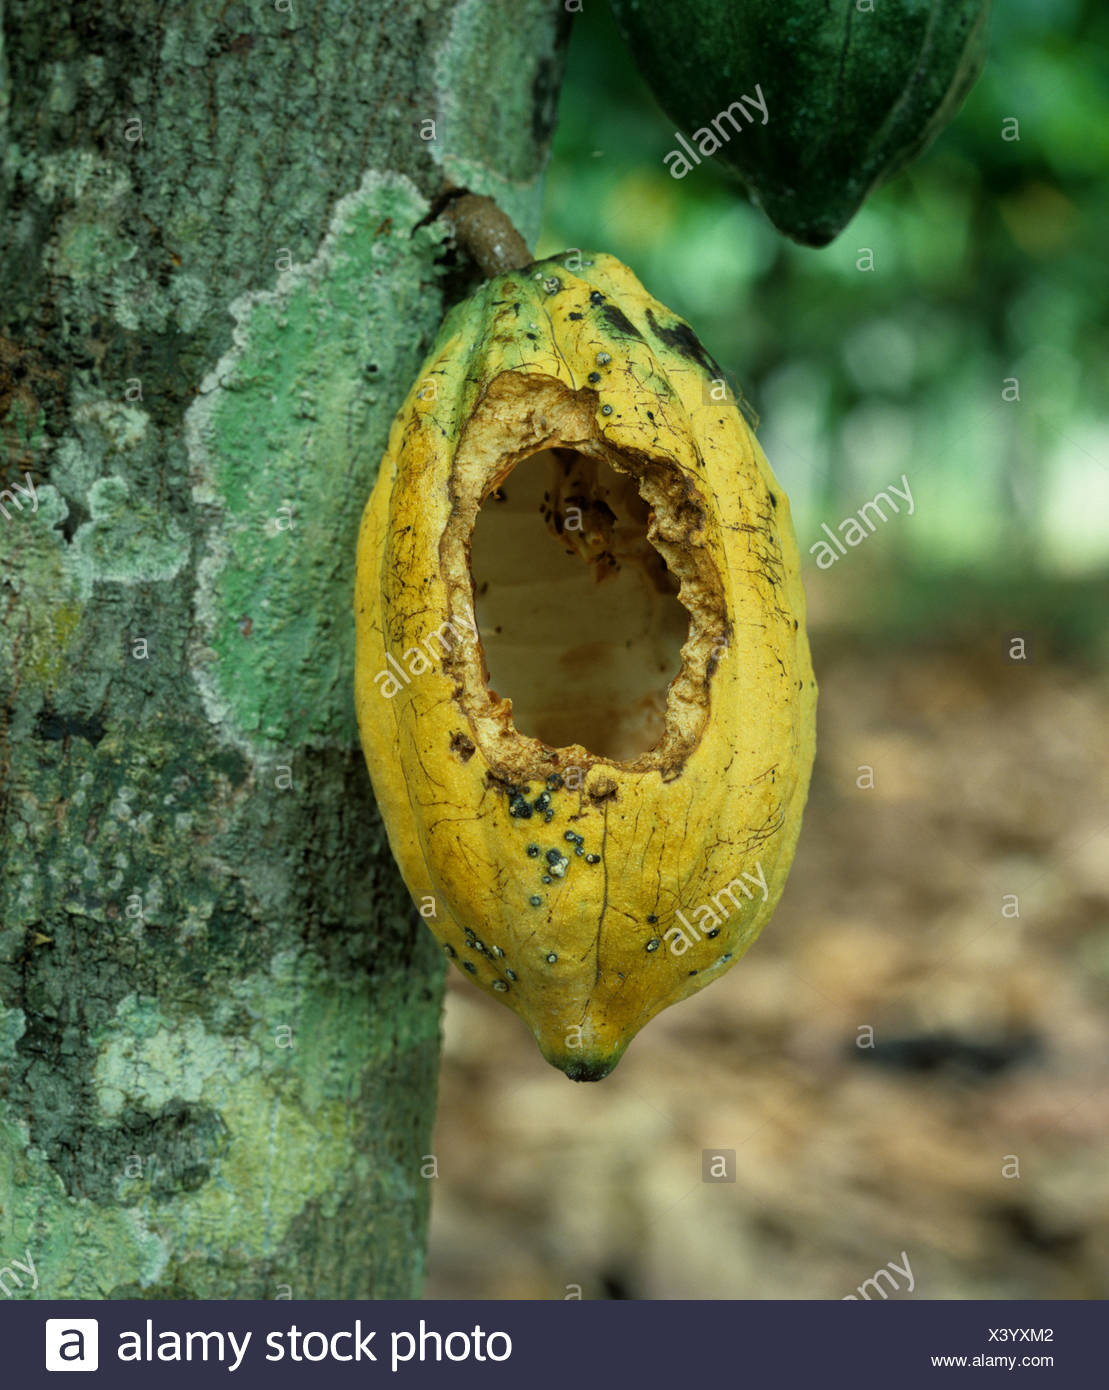 Rat or squirrel rodent damage to a cocoa pod on the bush Malaysia - Stock Image